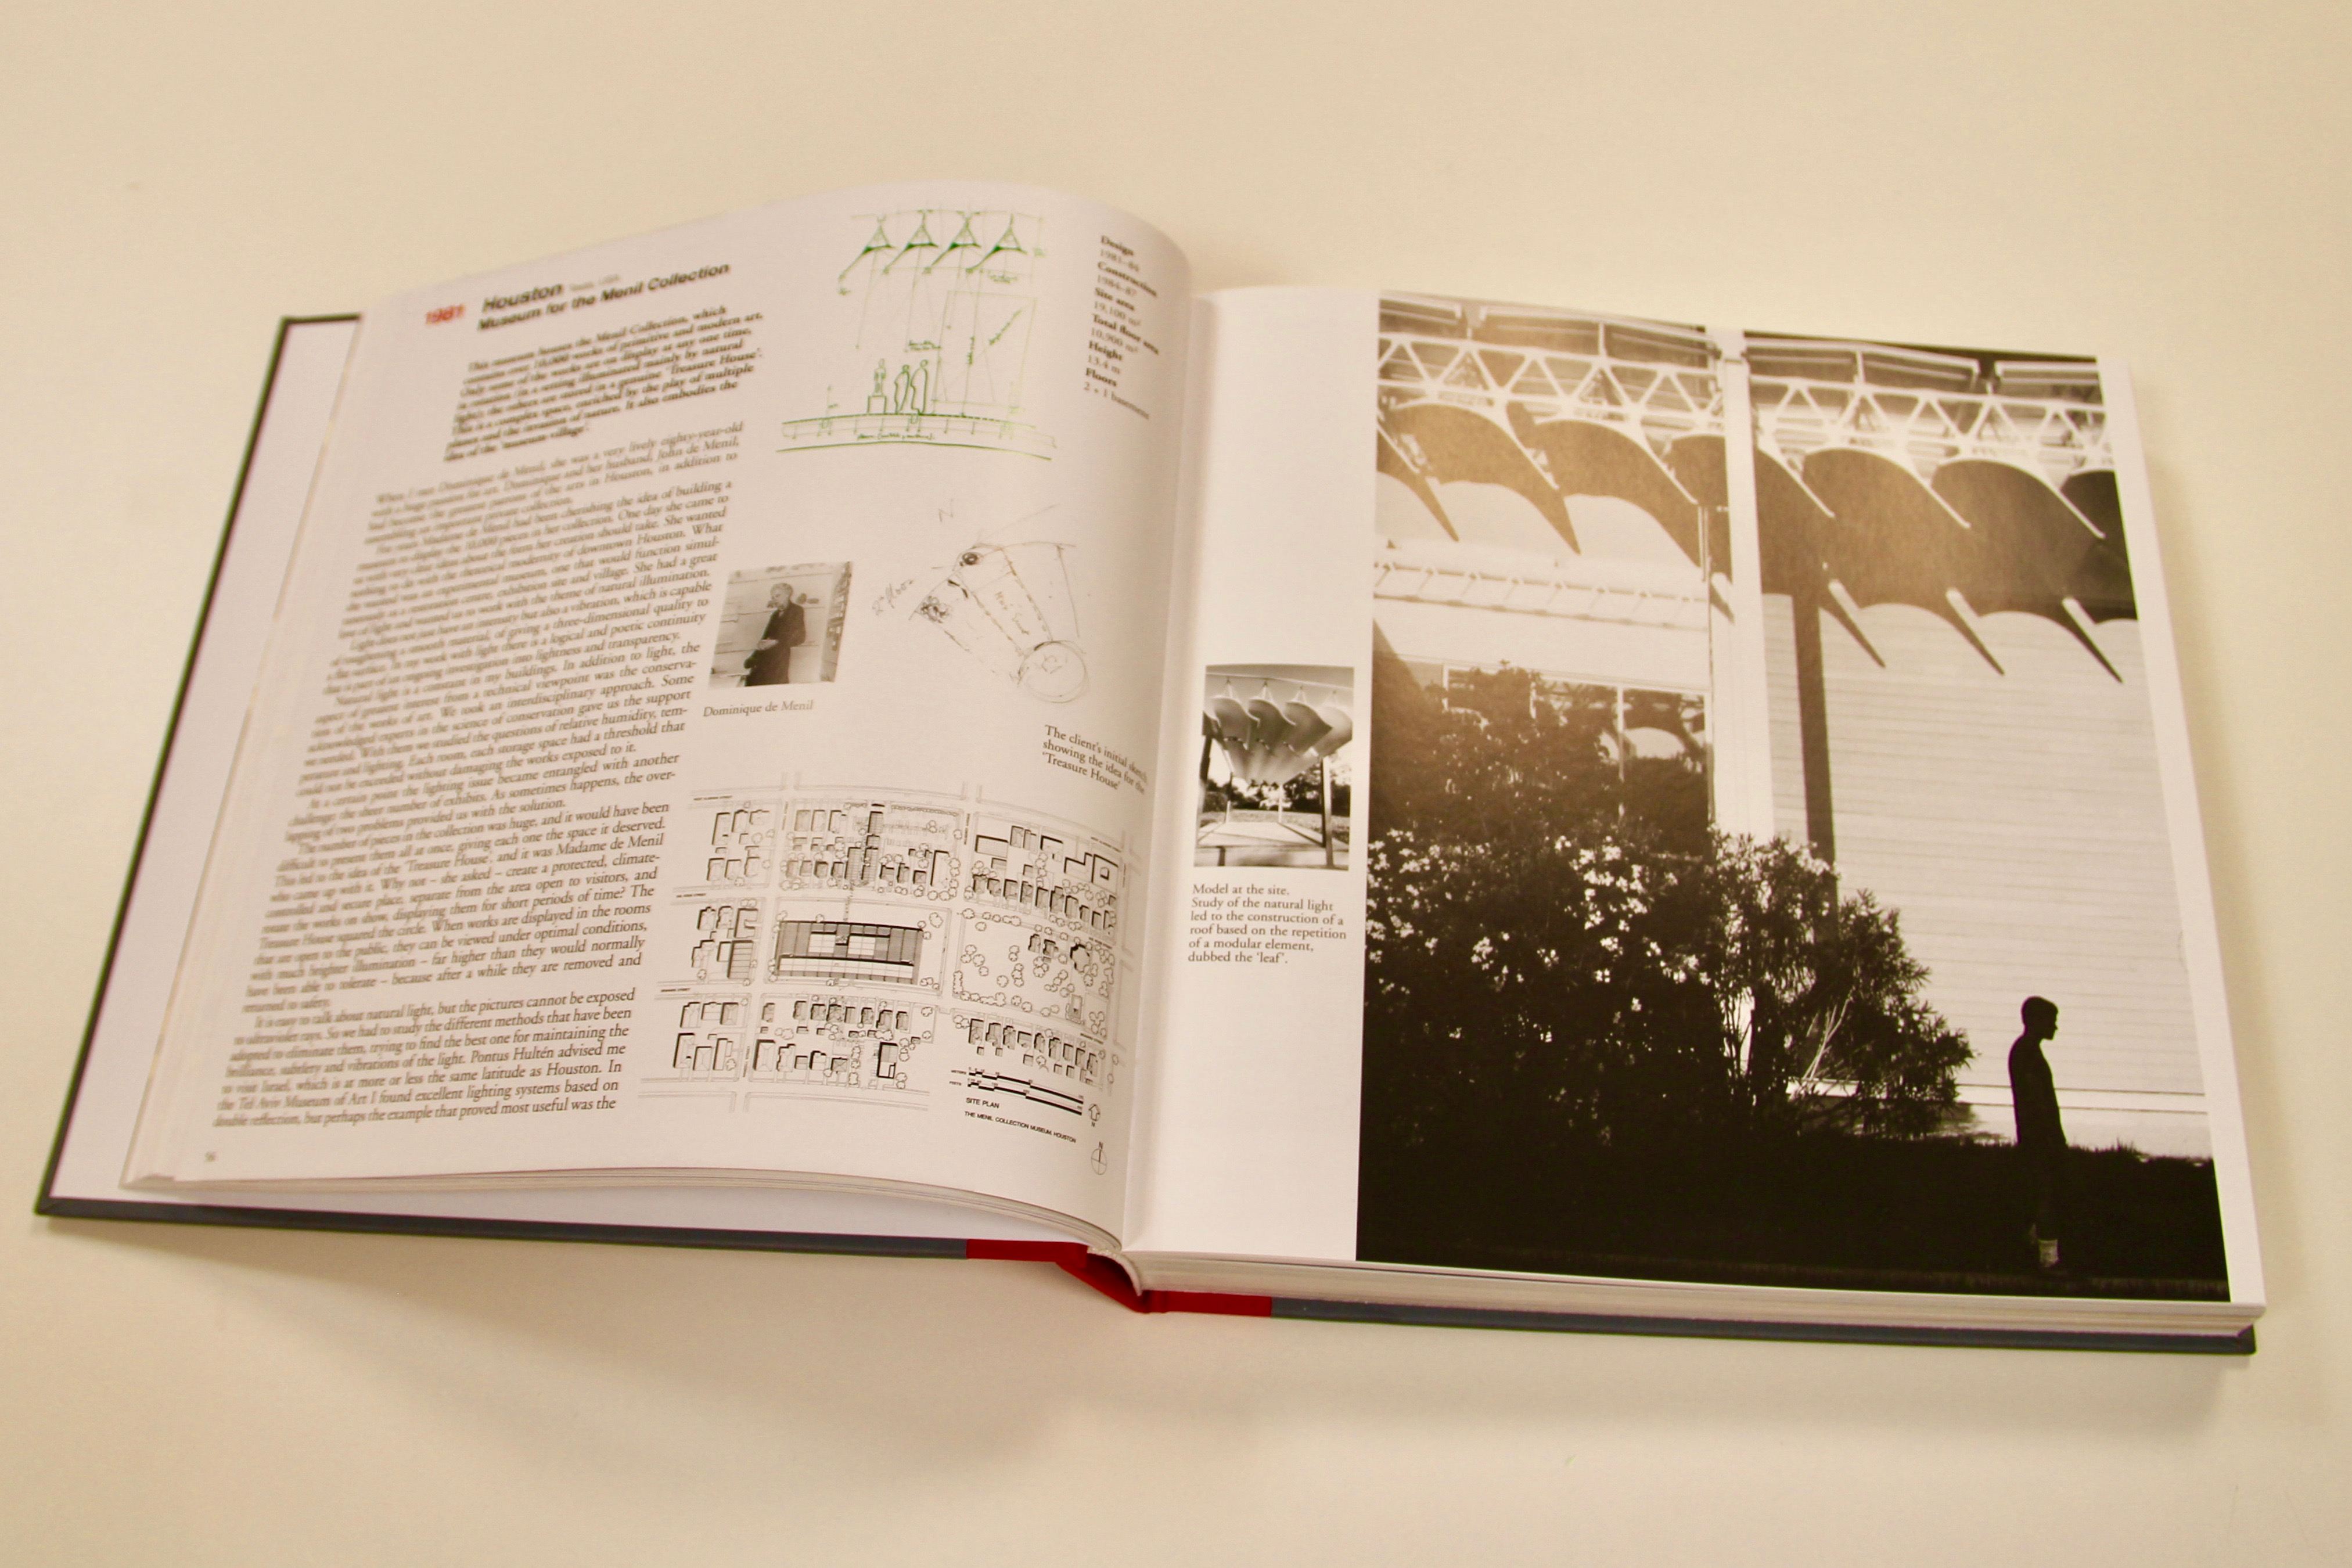 Renzo Piano Book